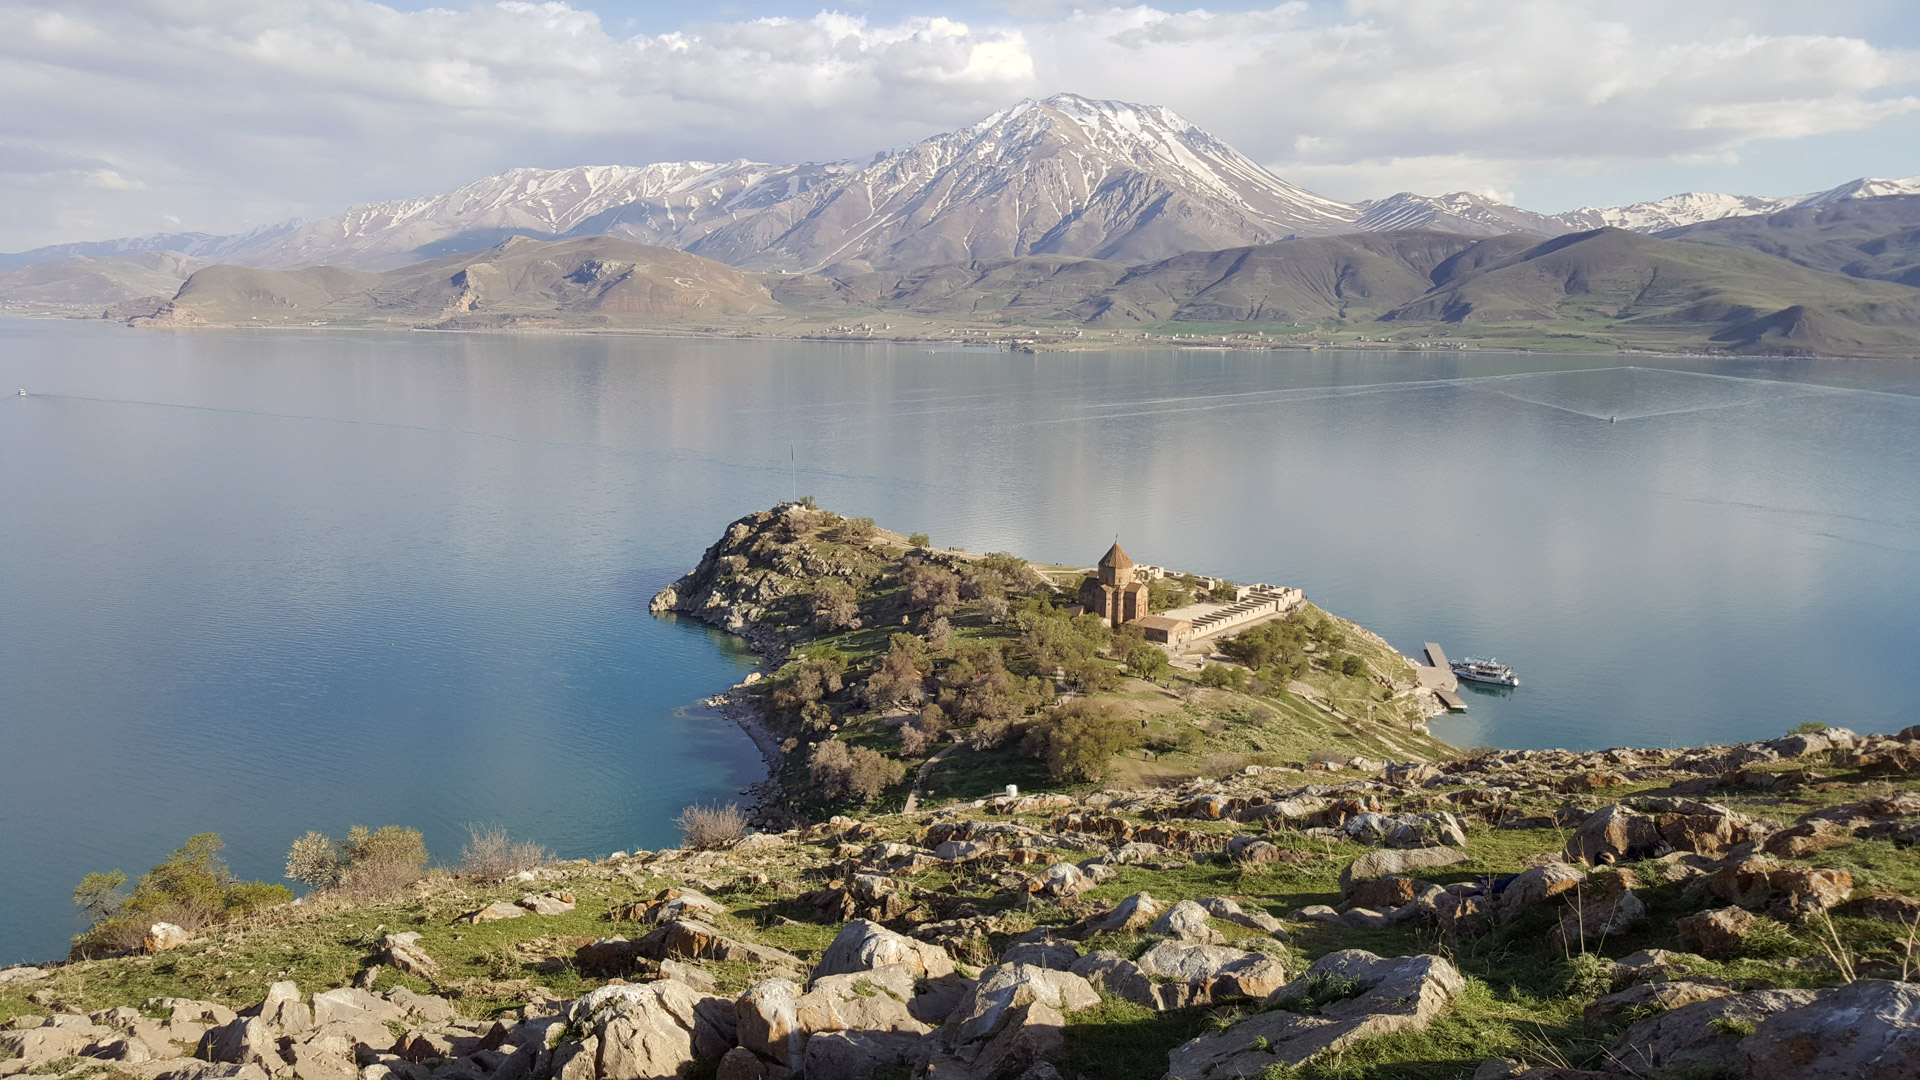 Secrets of Lake Van